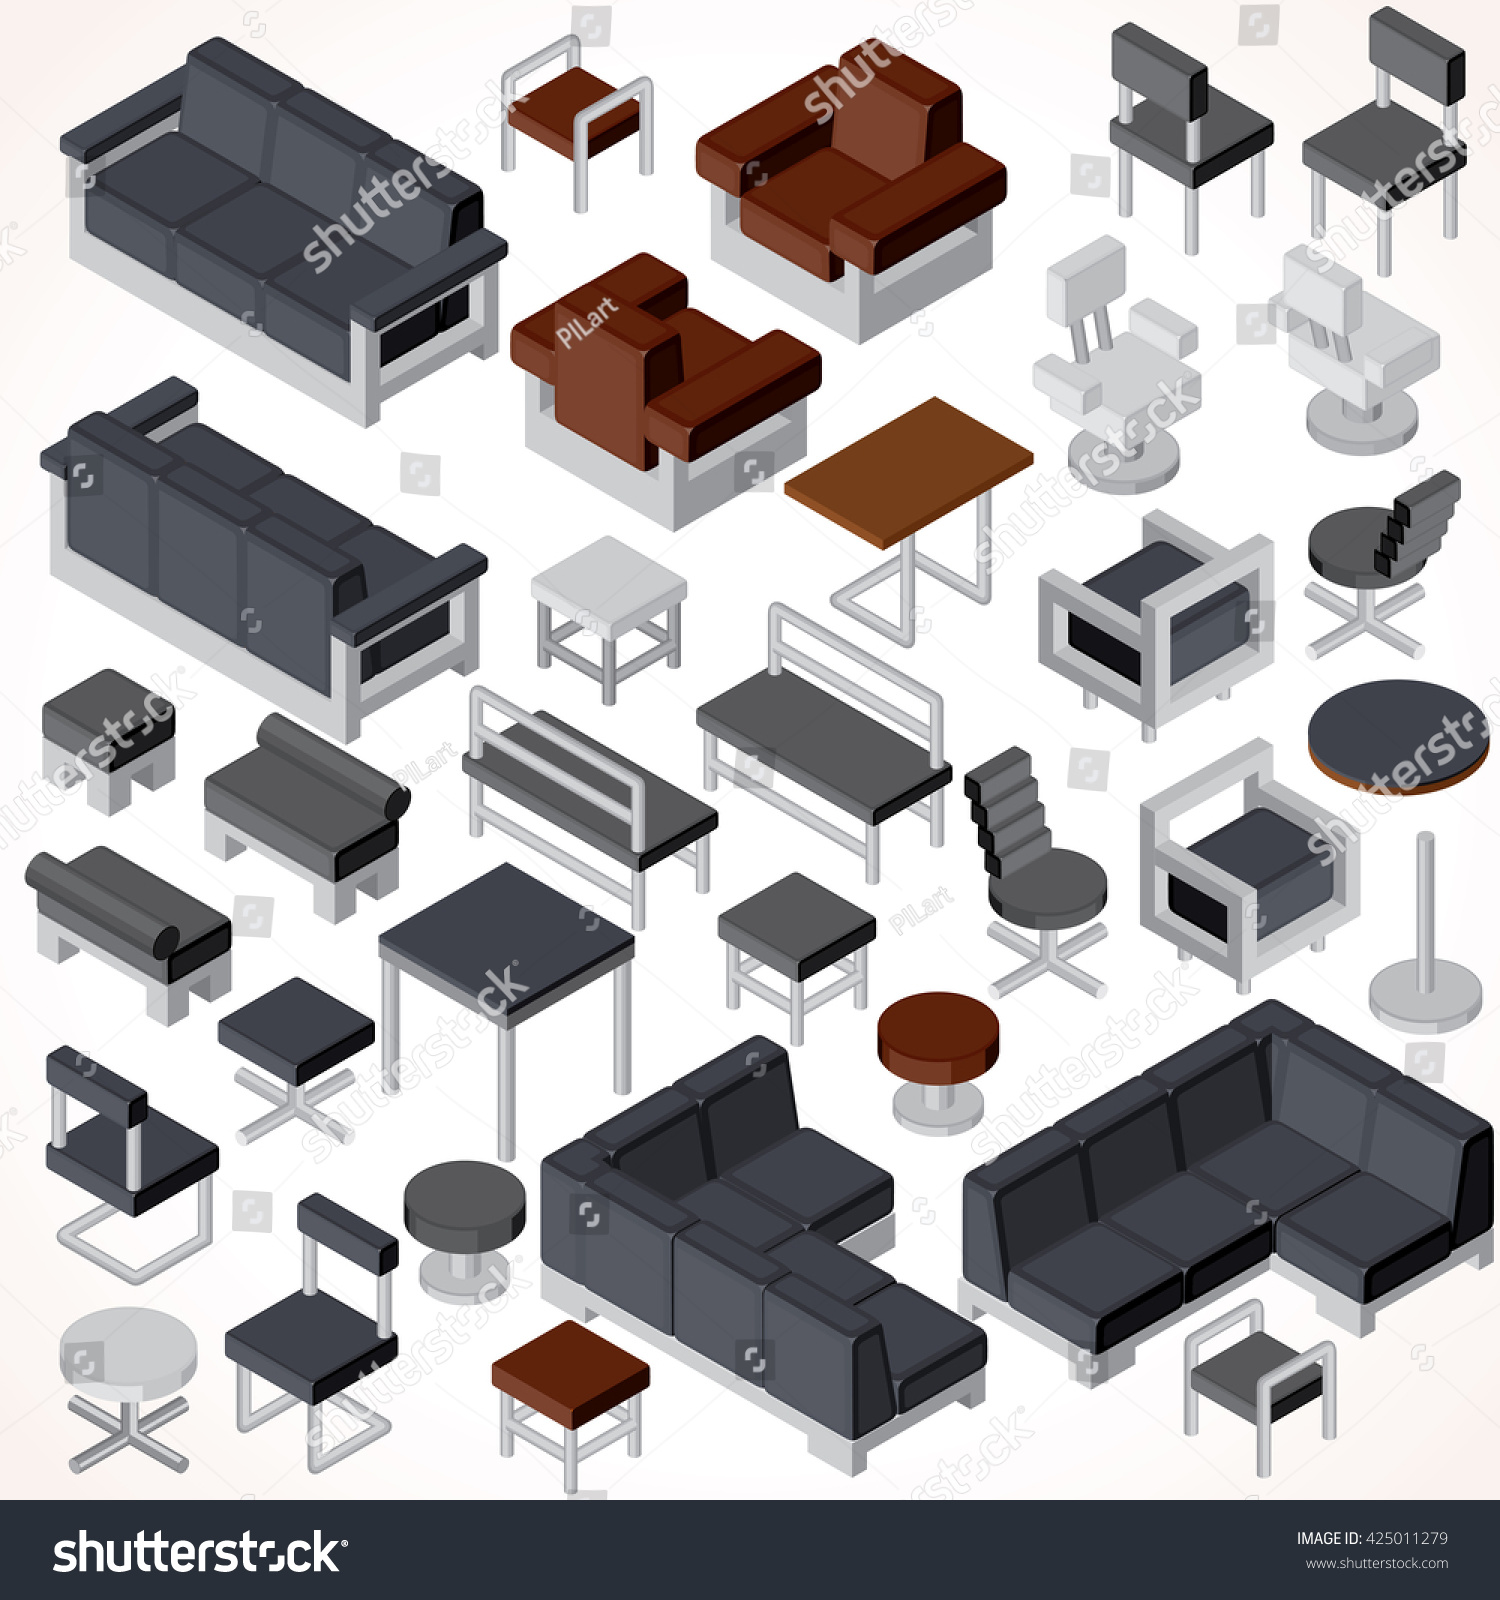 isometric office furniture vector collection. isometric office furniture vector collection set of various cabinets shelves tables l